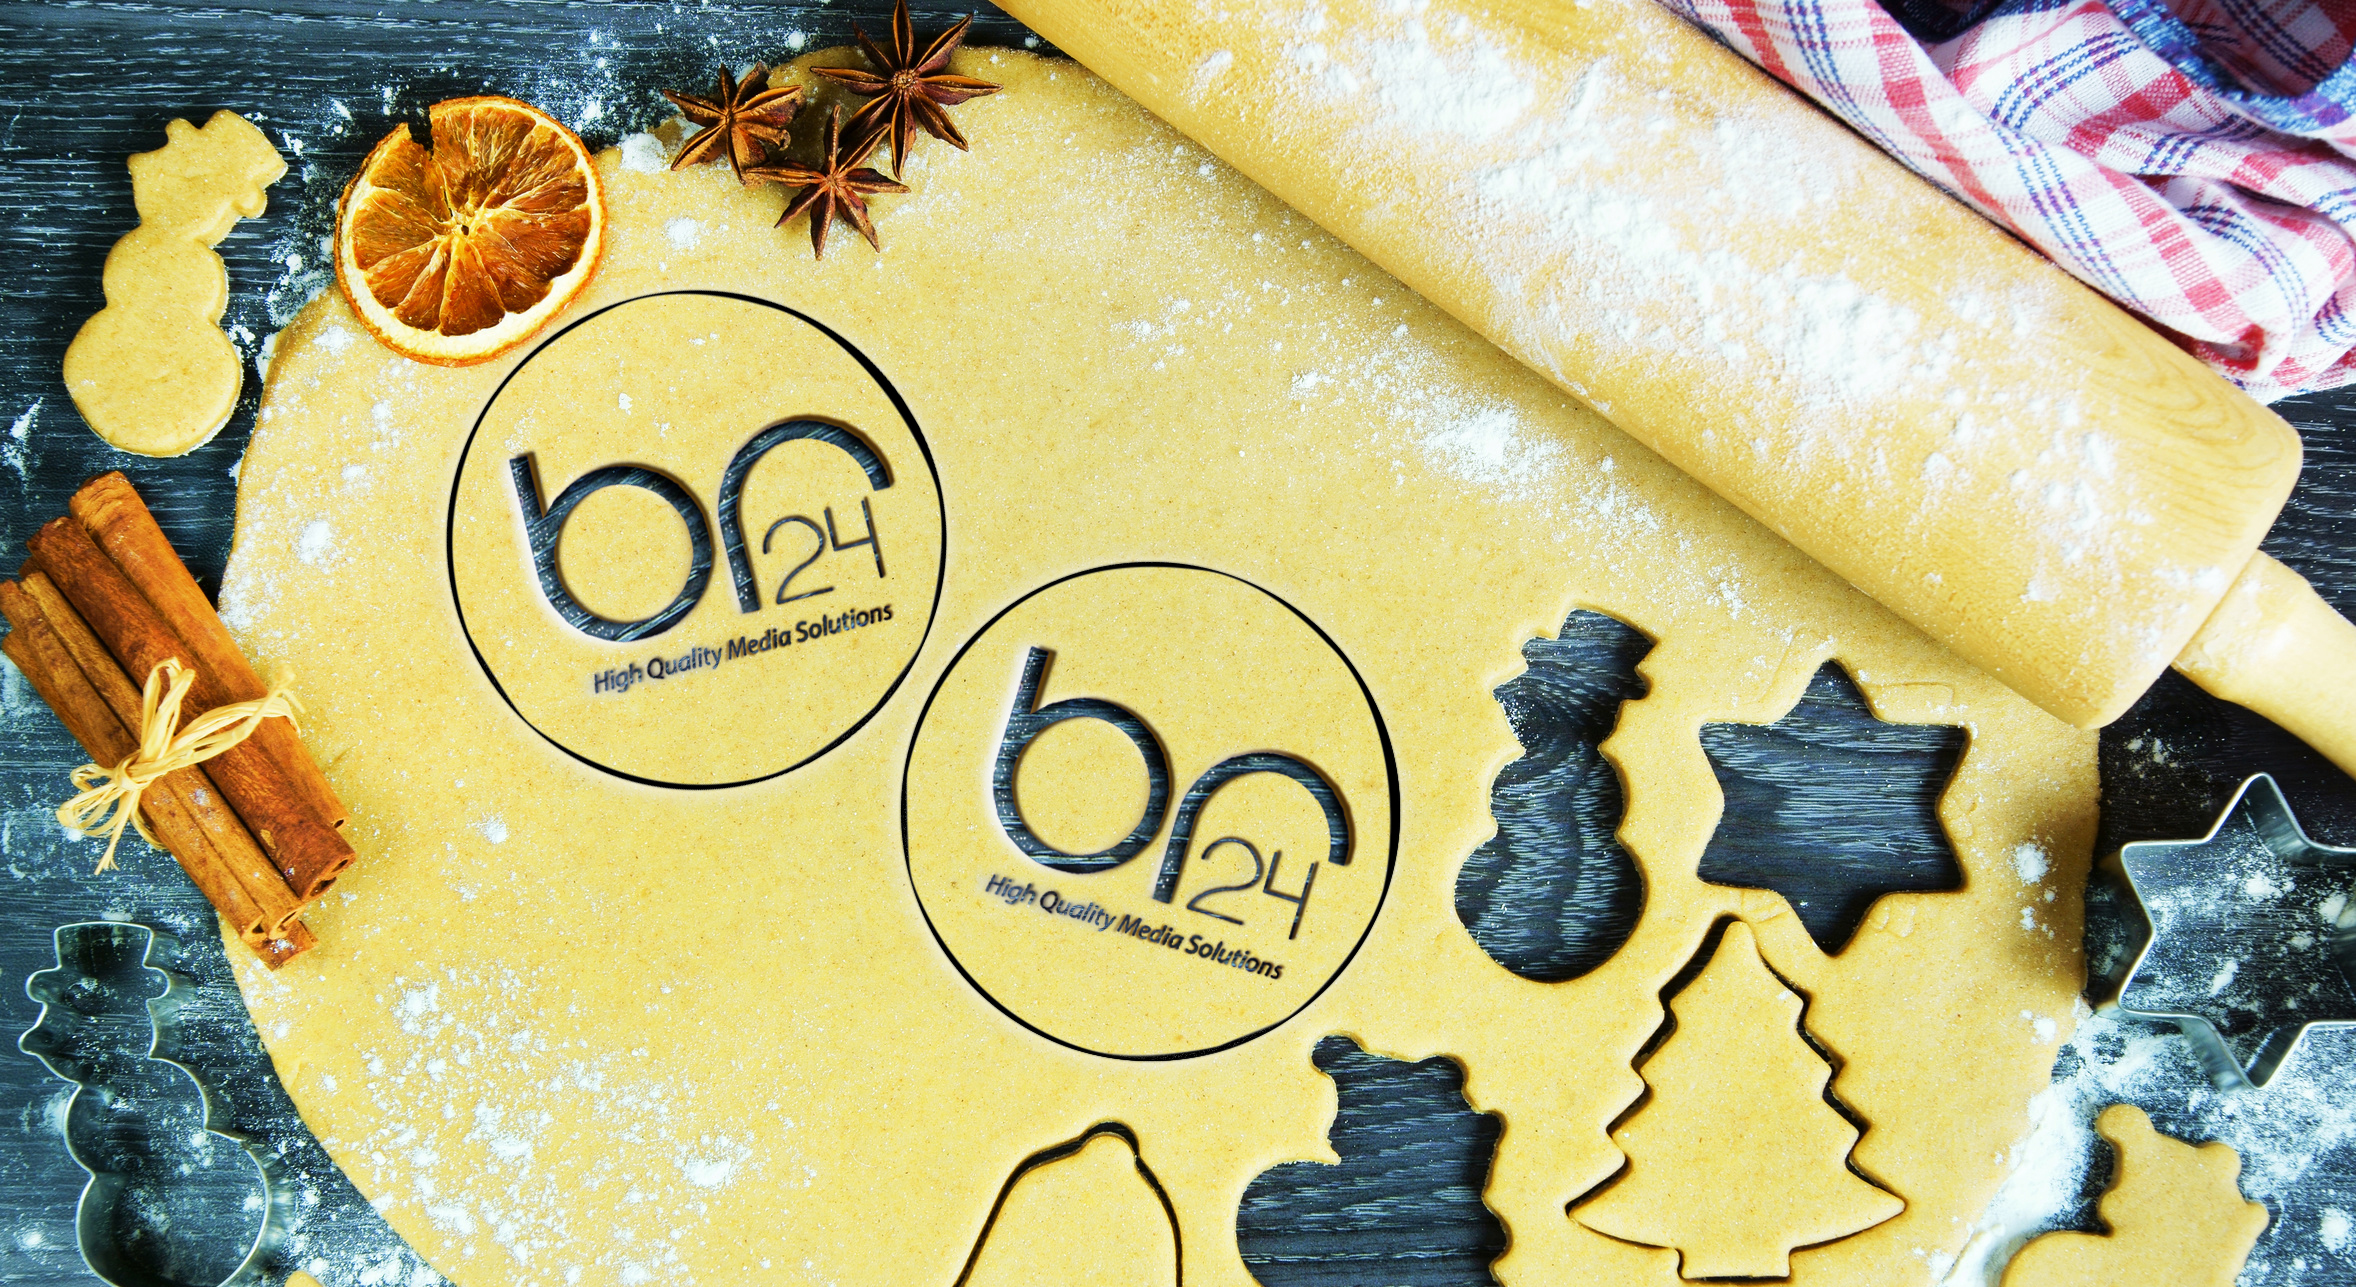 Br24 Home: Christmas Dough with Br24 logo cookie